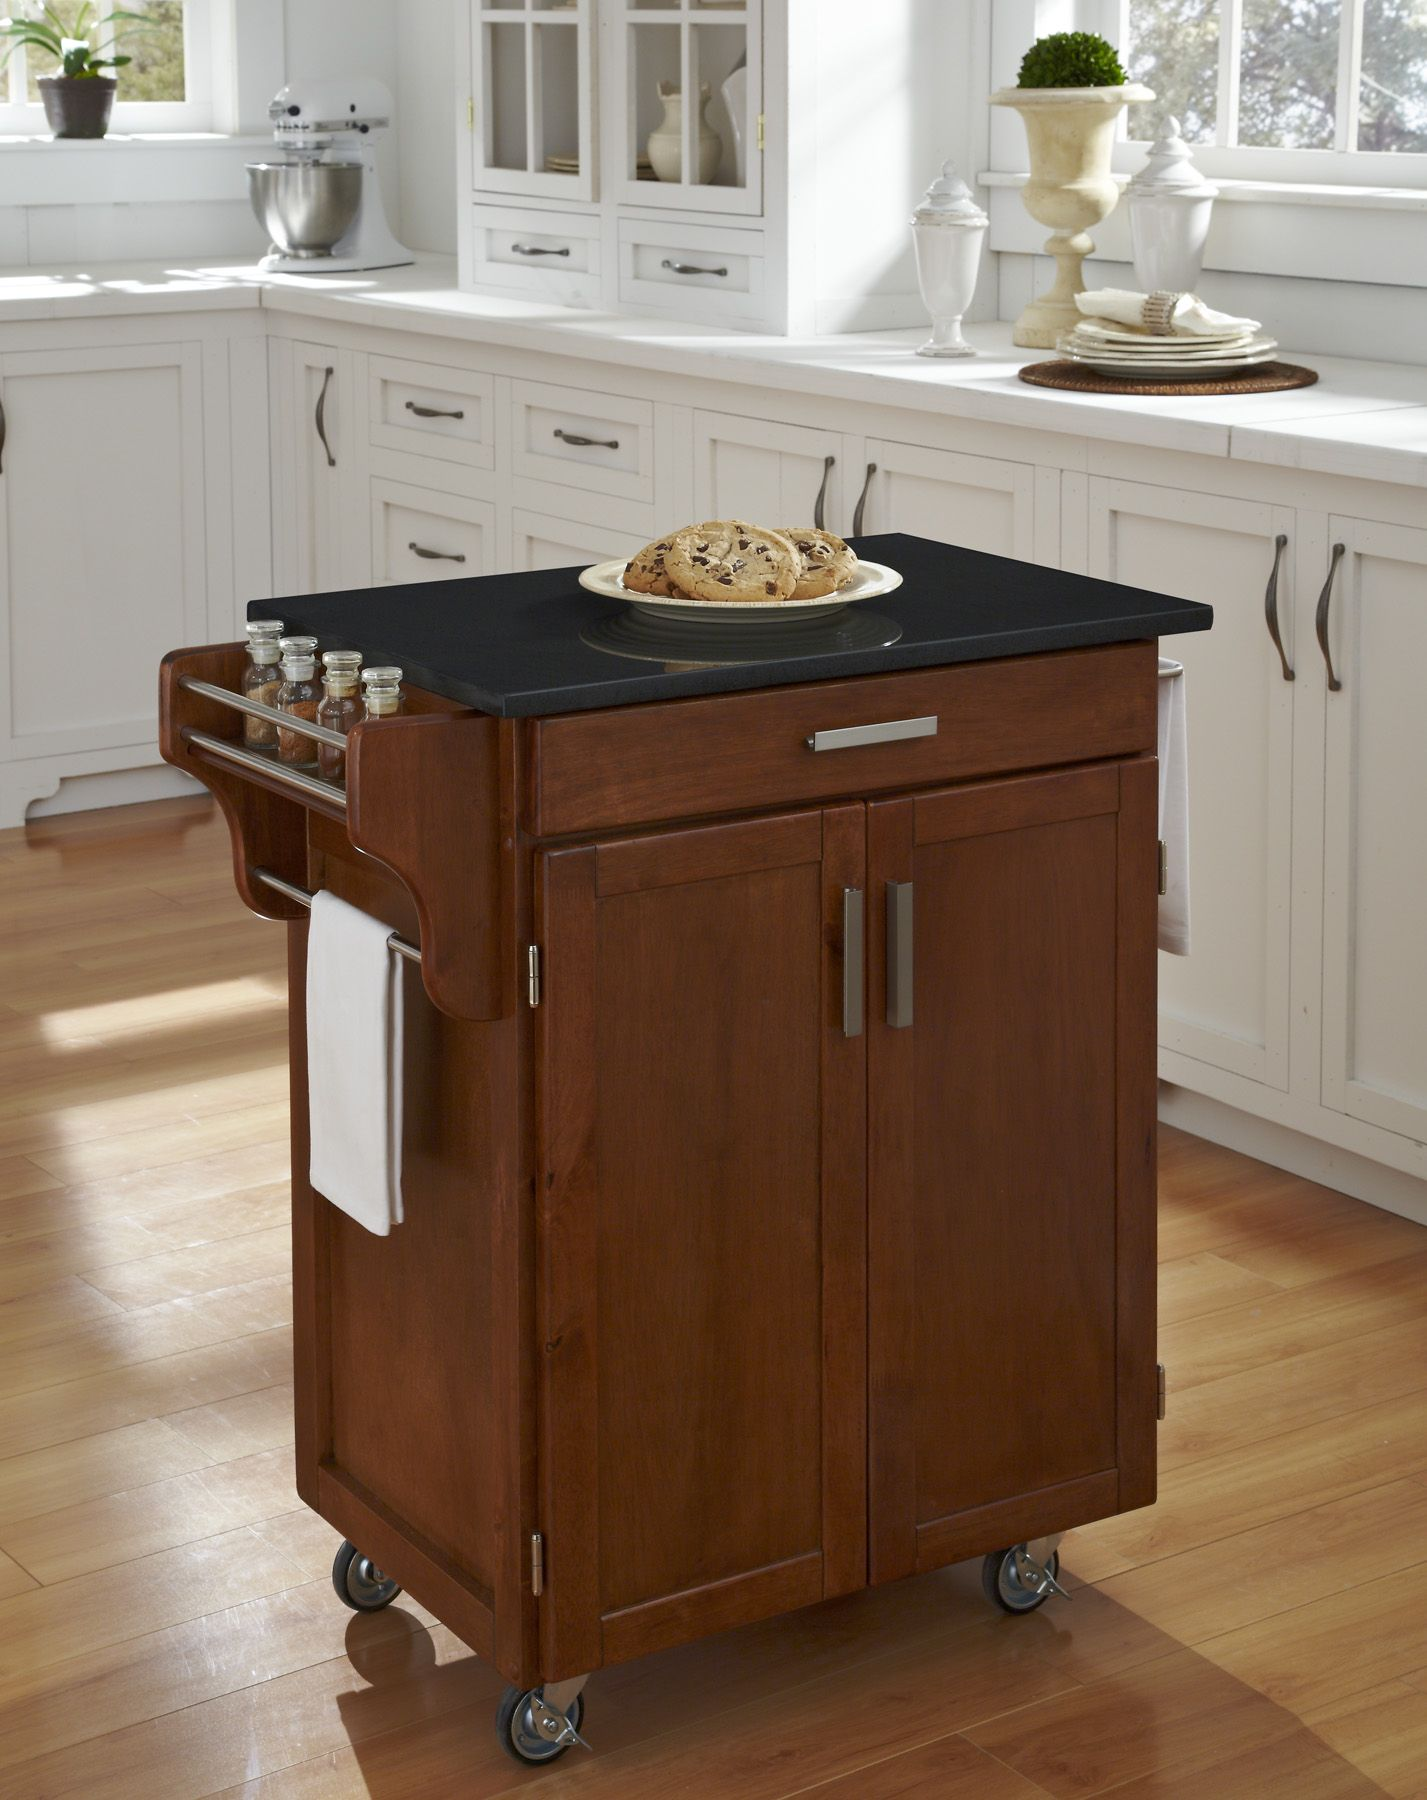 Home Styles Create-A-Cart Cuisine Cart - Cottage Oak with Black Granite Top